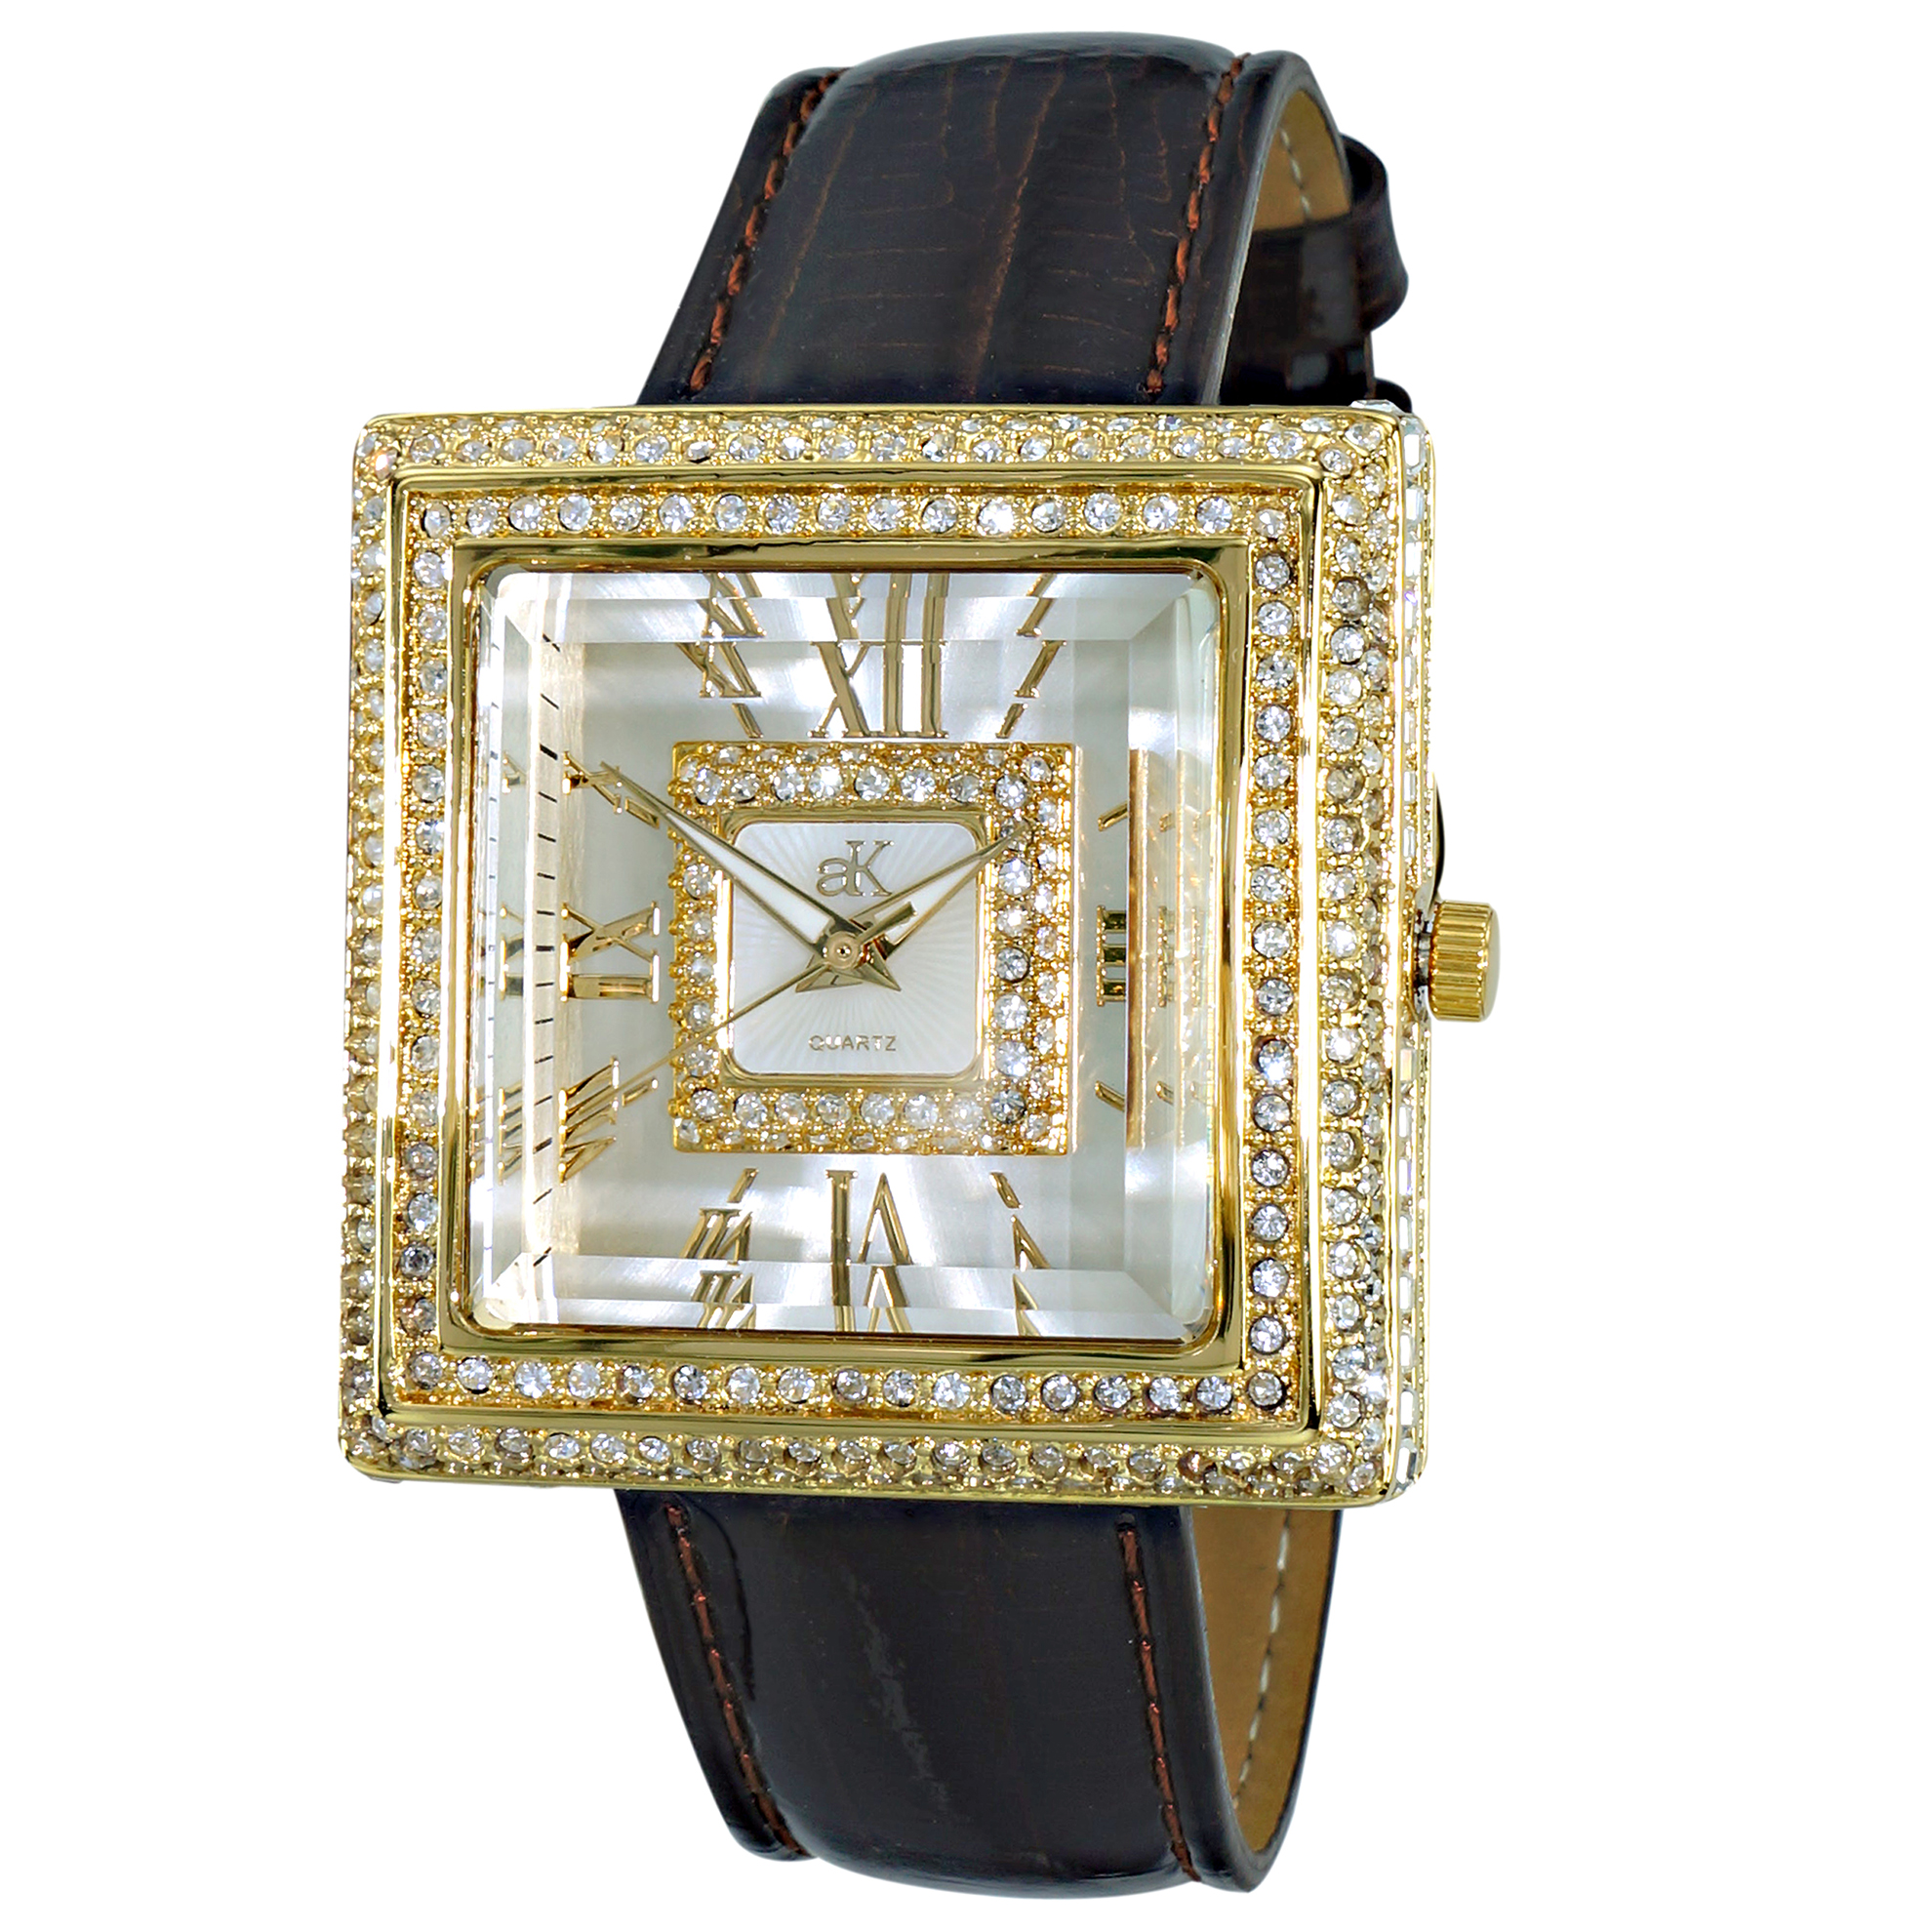 Adee Kaye AK25-LG Adee Kaye Ladies Milan Collection 370 Austrian Crystals Gold Dark Brown Leather Band